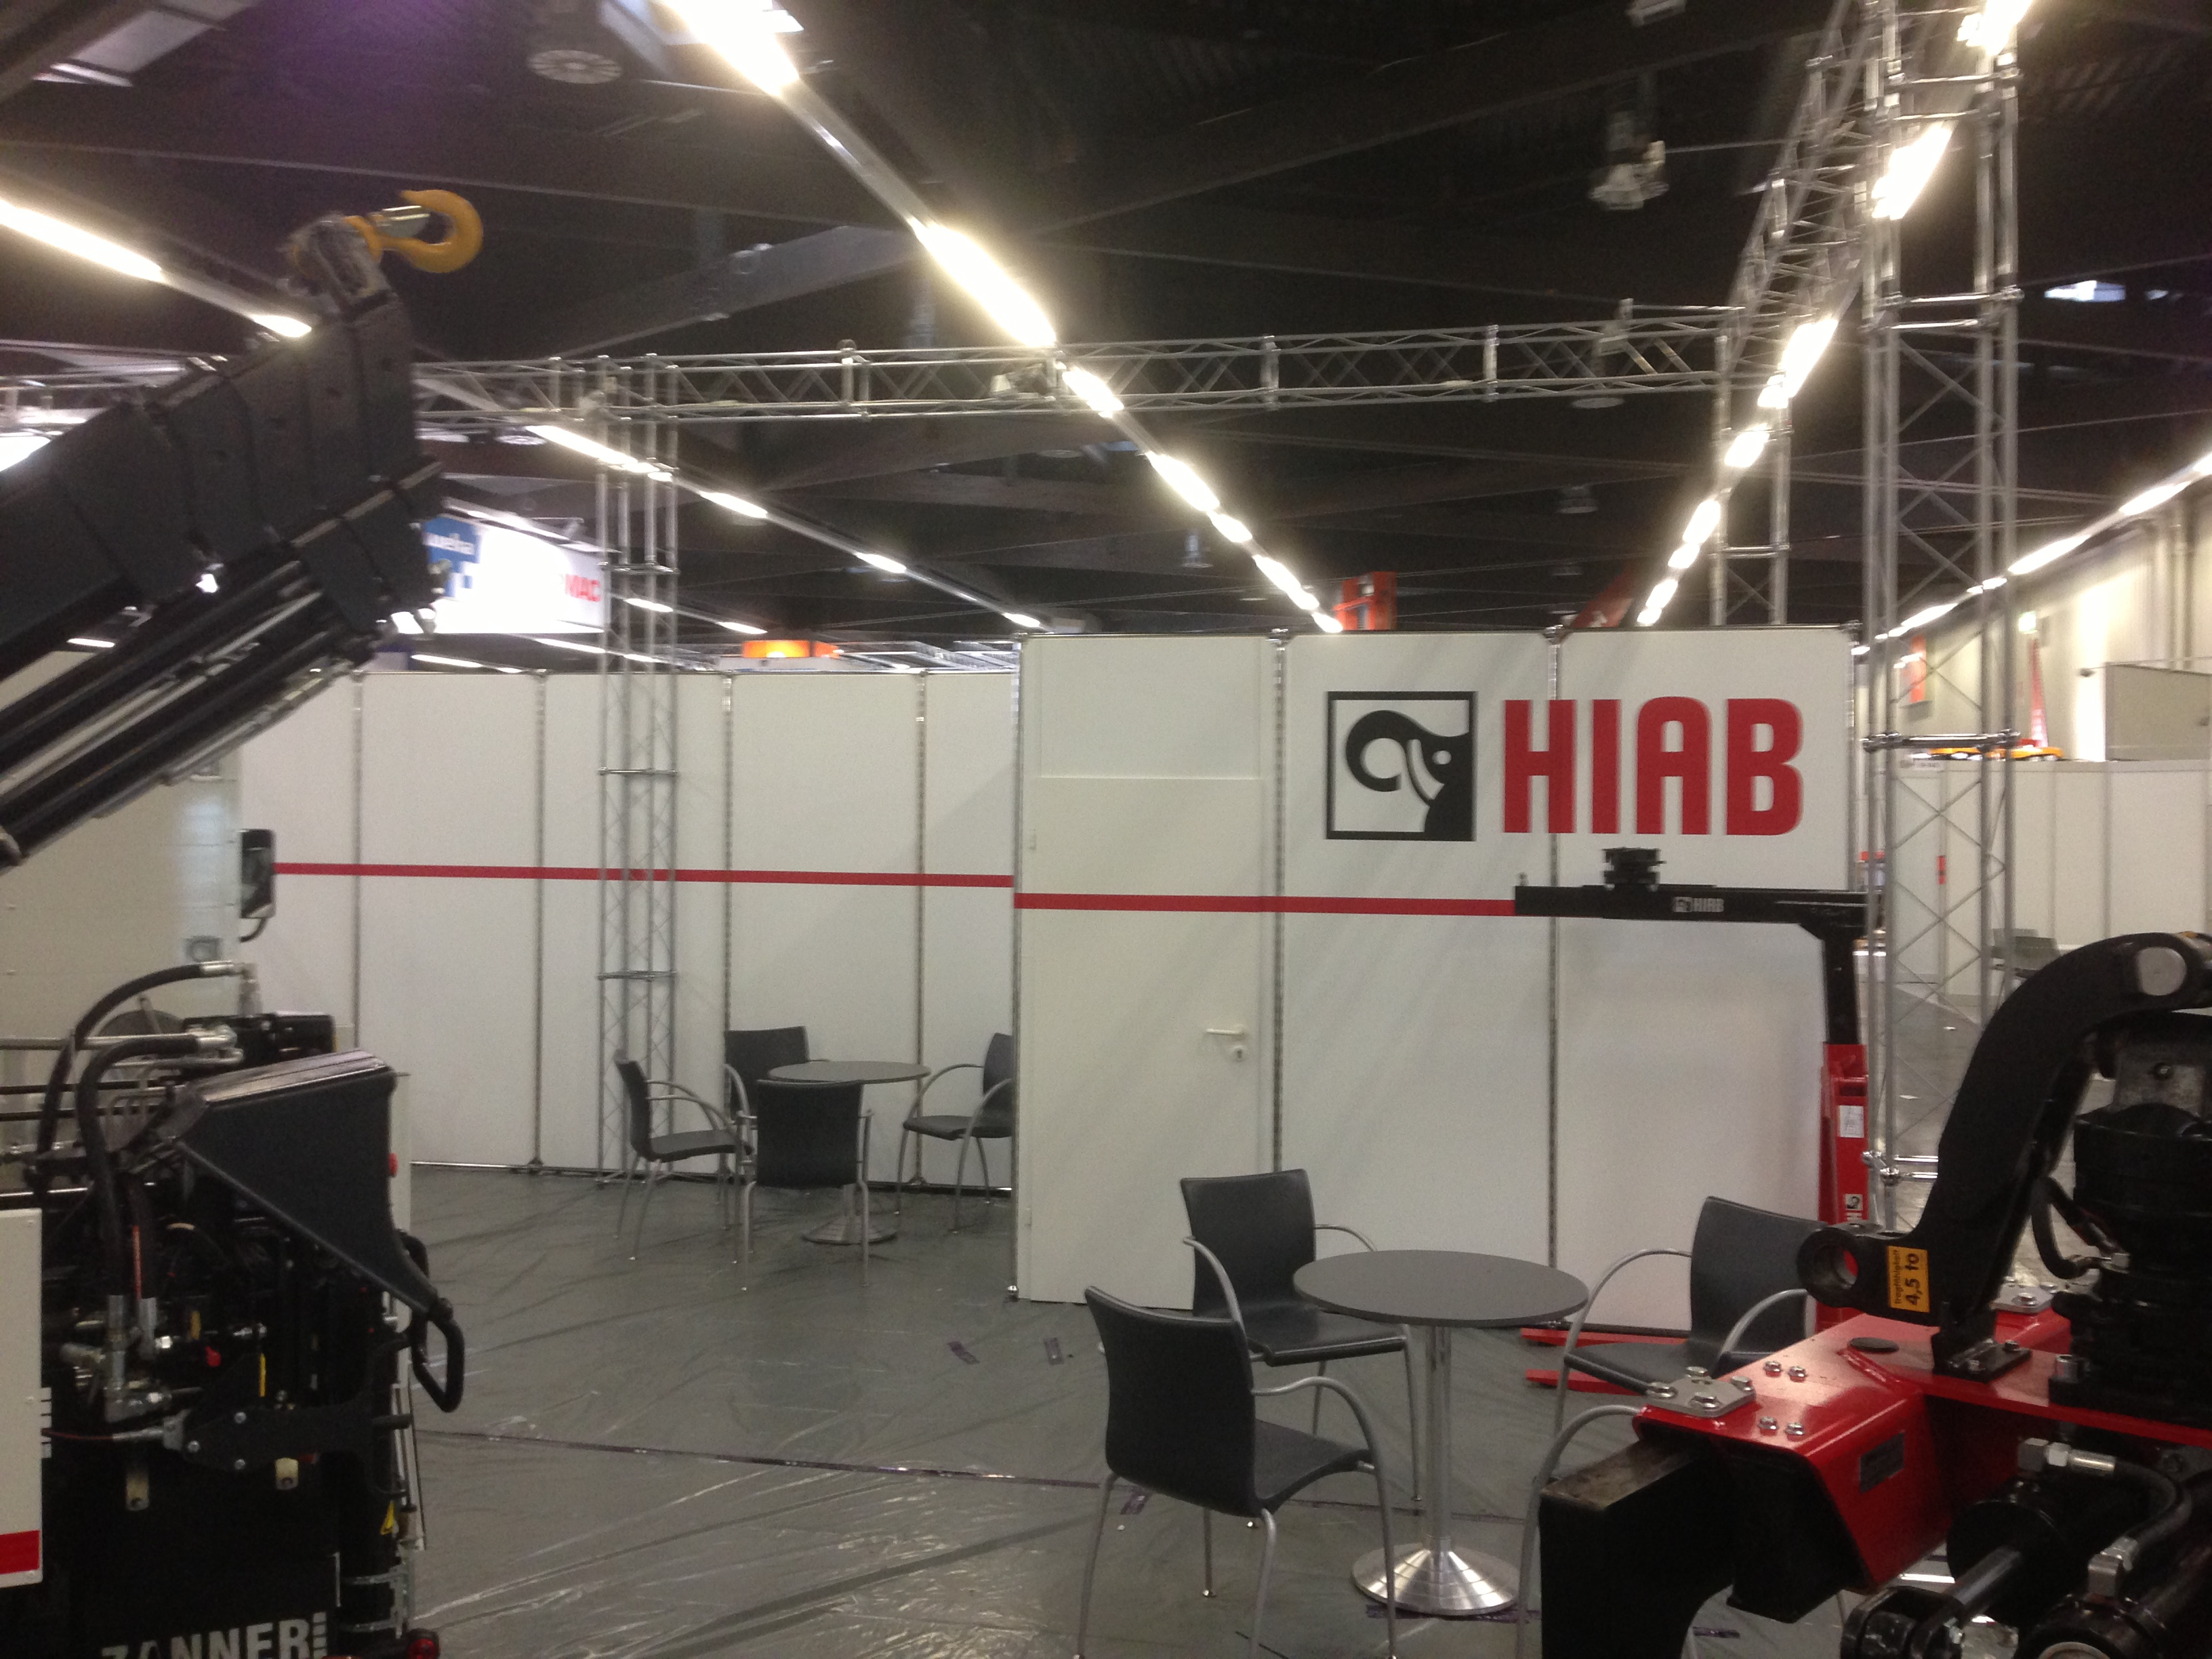 Messestand hiab